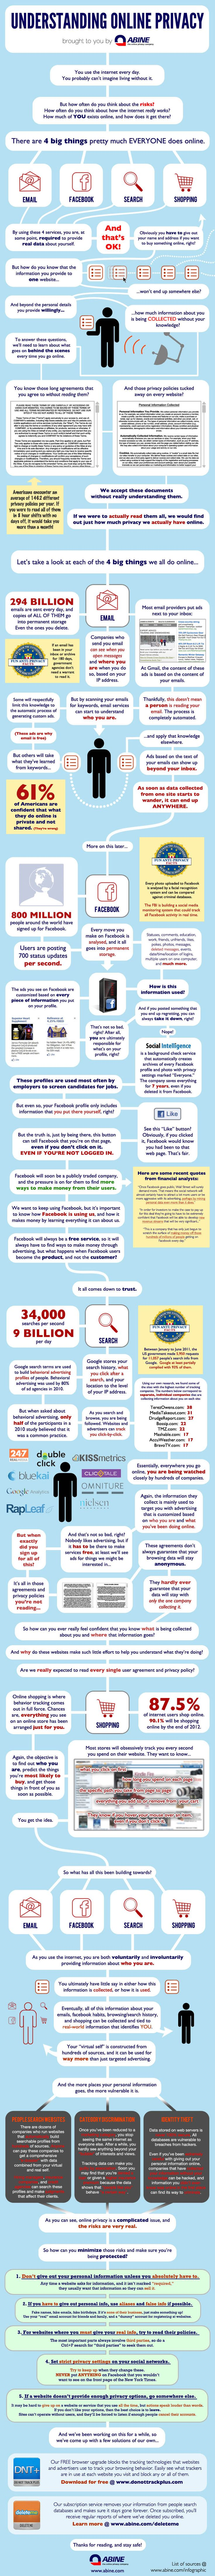 2/6/2013 - Understanding Your Online Privacy [INFOGRAPHIC] - Detailed and very helpful infographic for understanding online privacy, what you should/shouldn't share and how your social media affects your online identity. #infographic #privacy #online